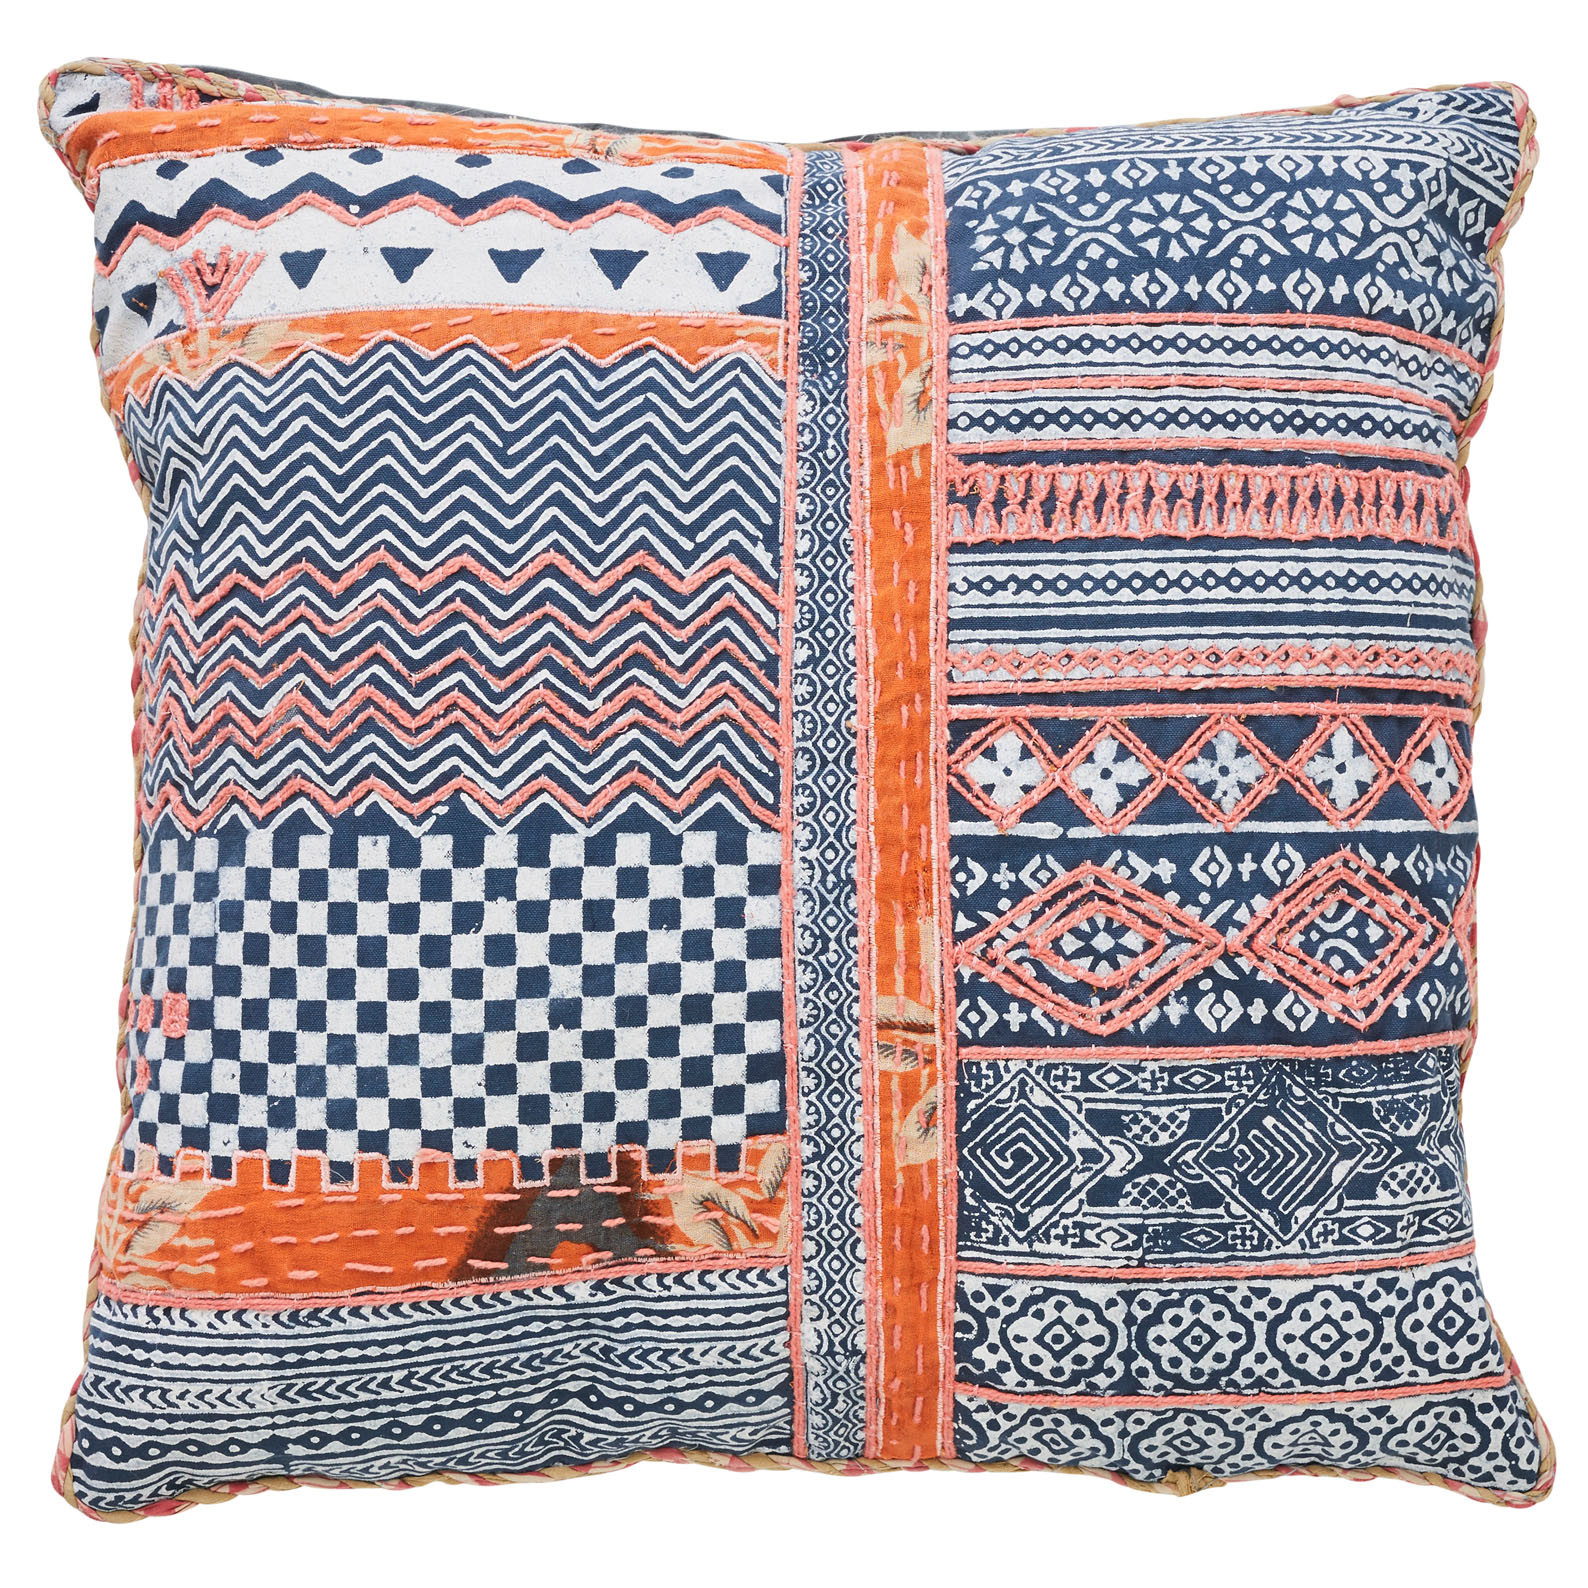 Tribe Warrior Cushion